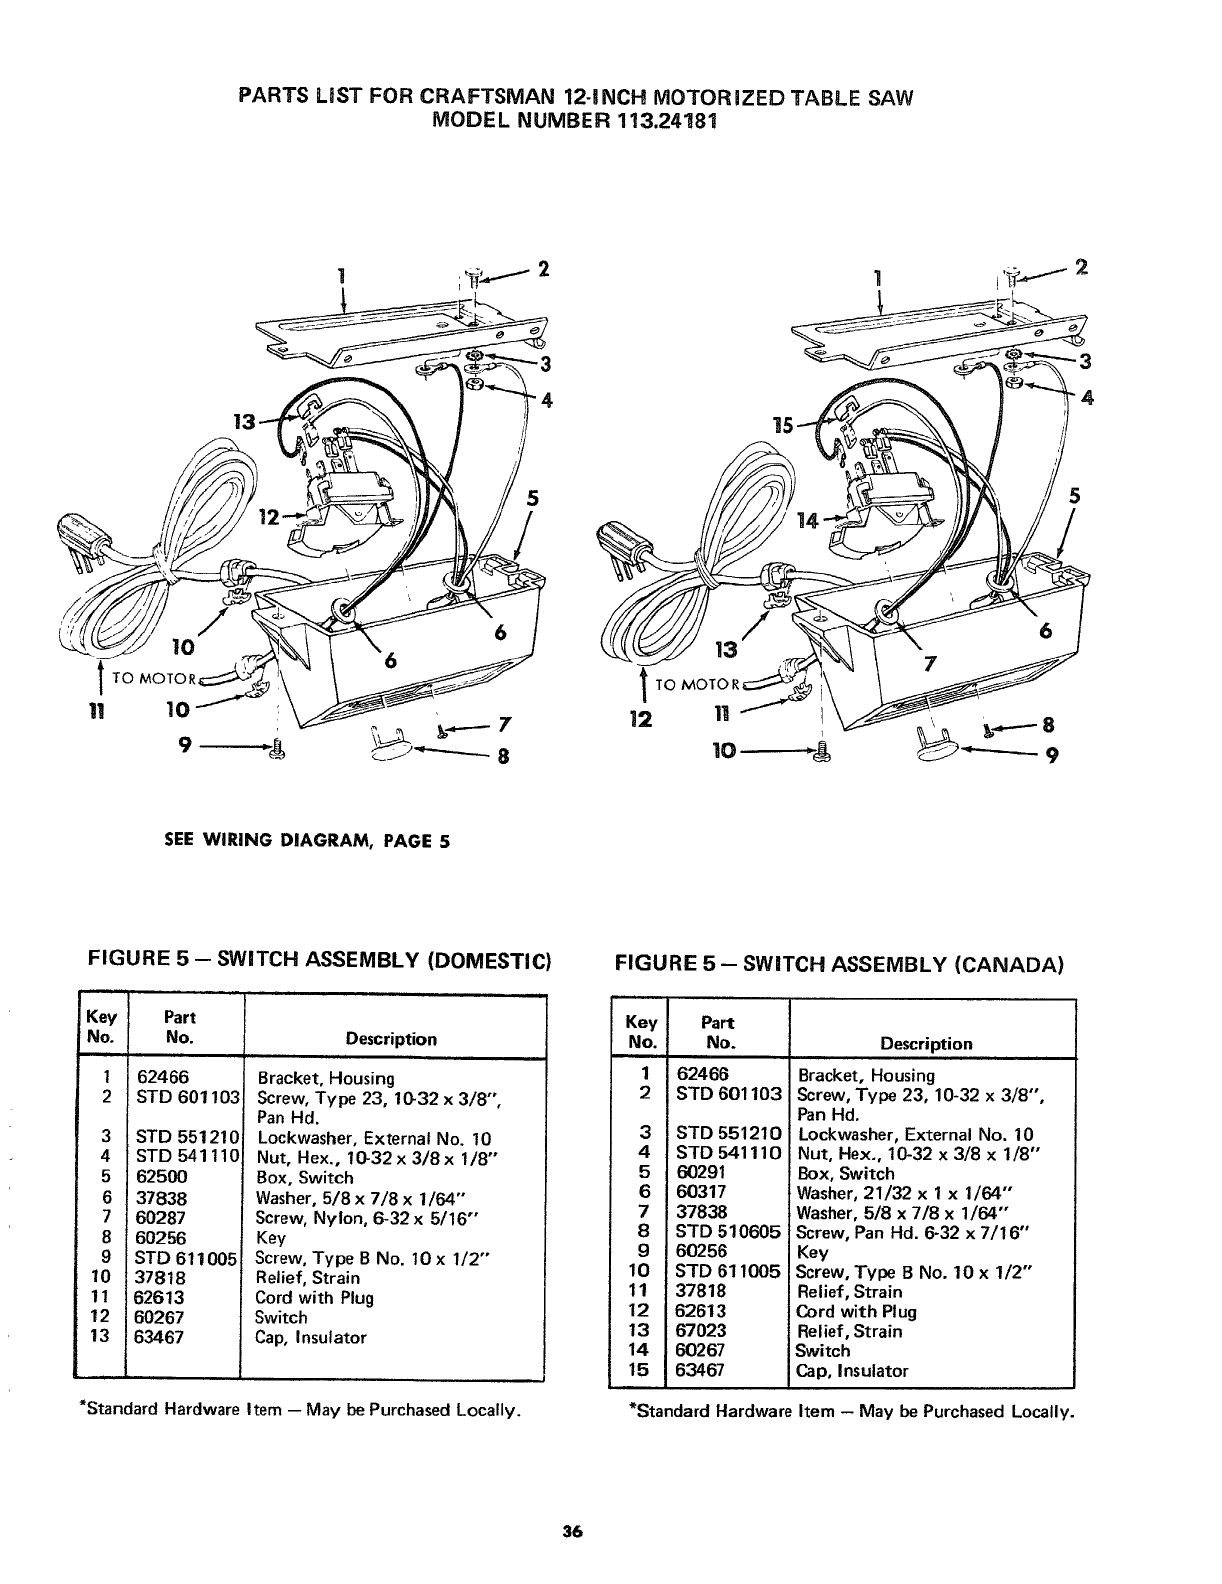 cffdc2e2 ba6b 43b2 a168 a3d4ed03dc5a bg24 page 36 of craftsman saw 113 24181 user guide manualsonline com table saw wiring diagram at fashall.co